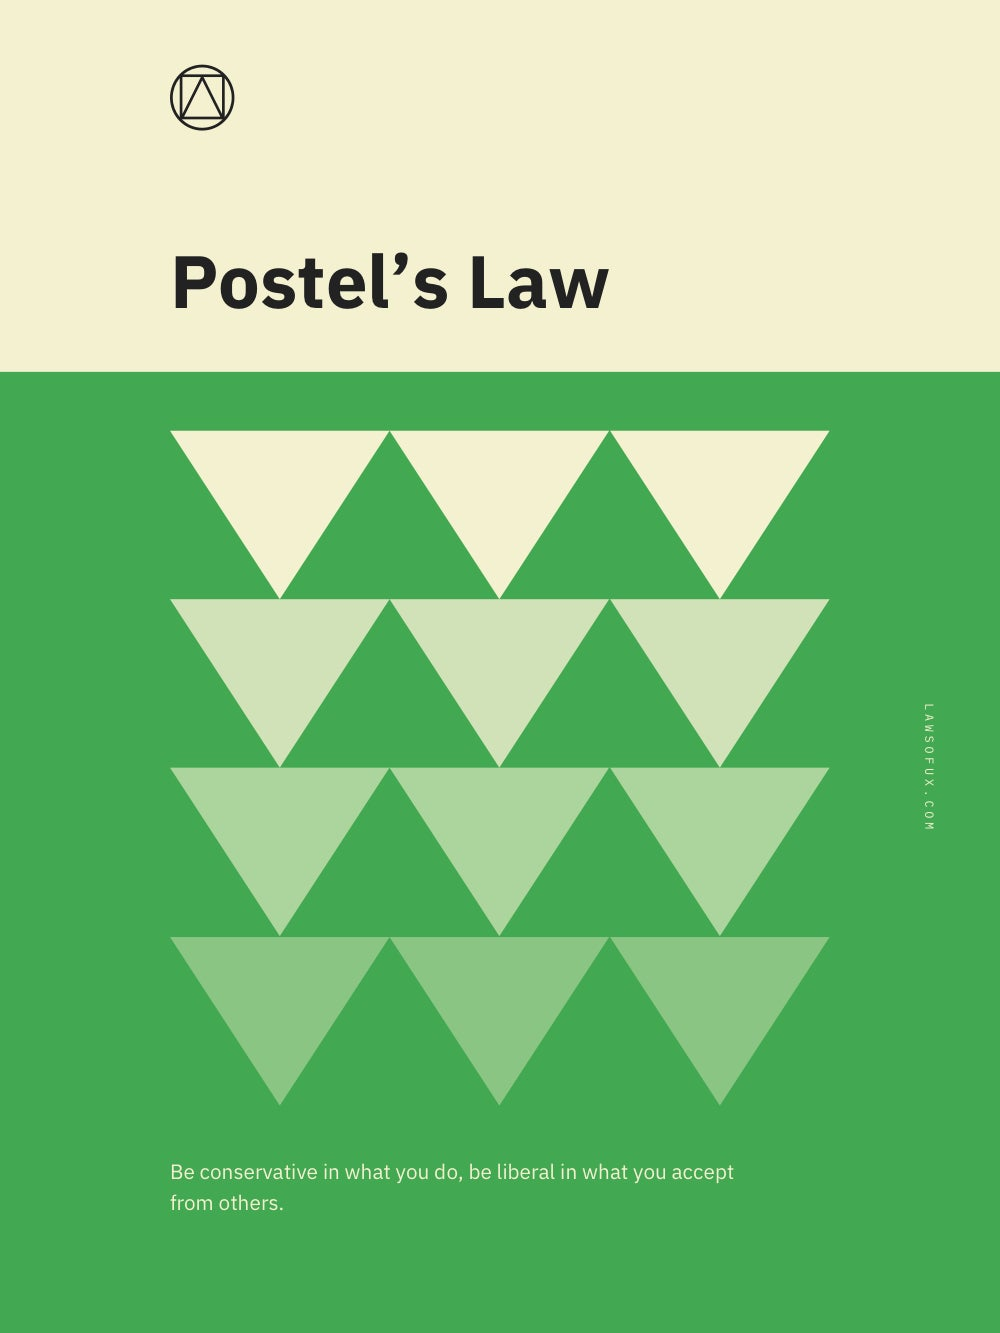 Postel's Law Poster